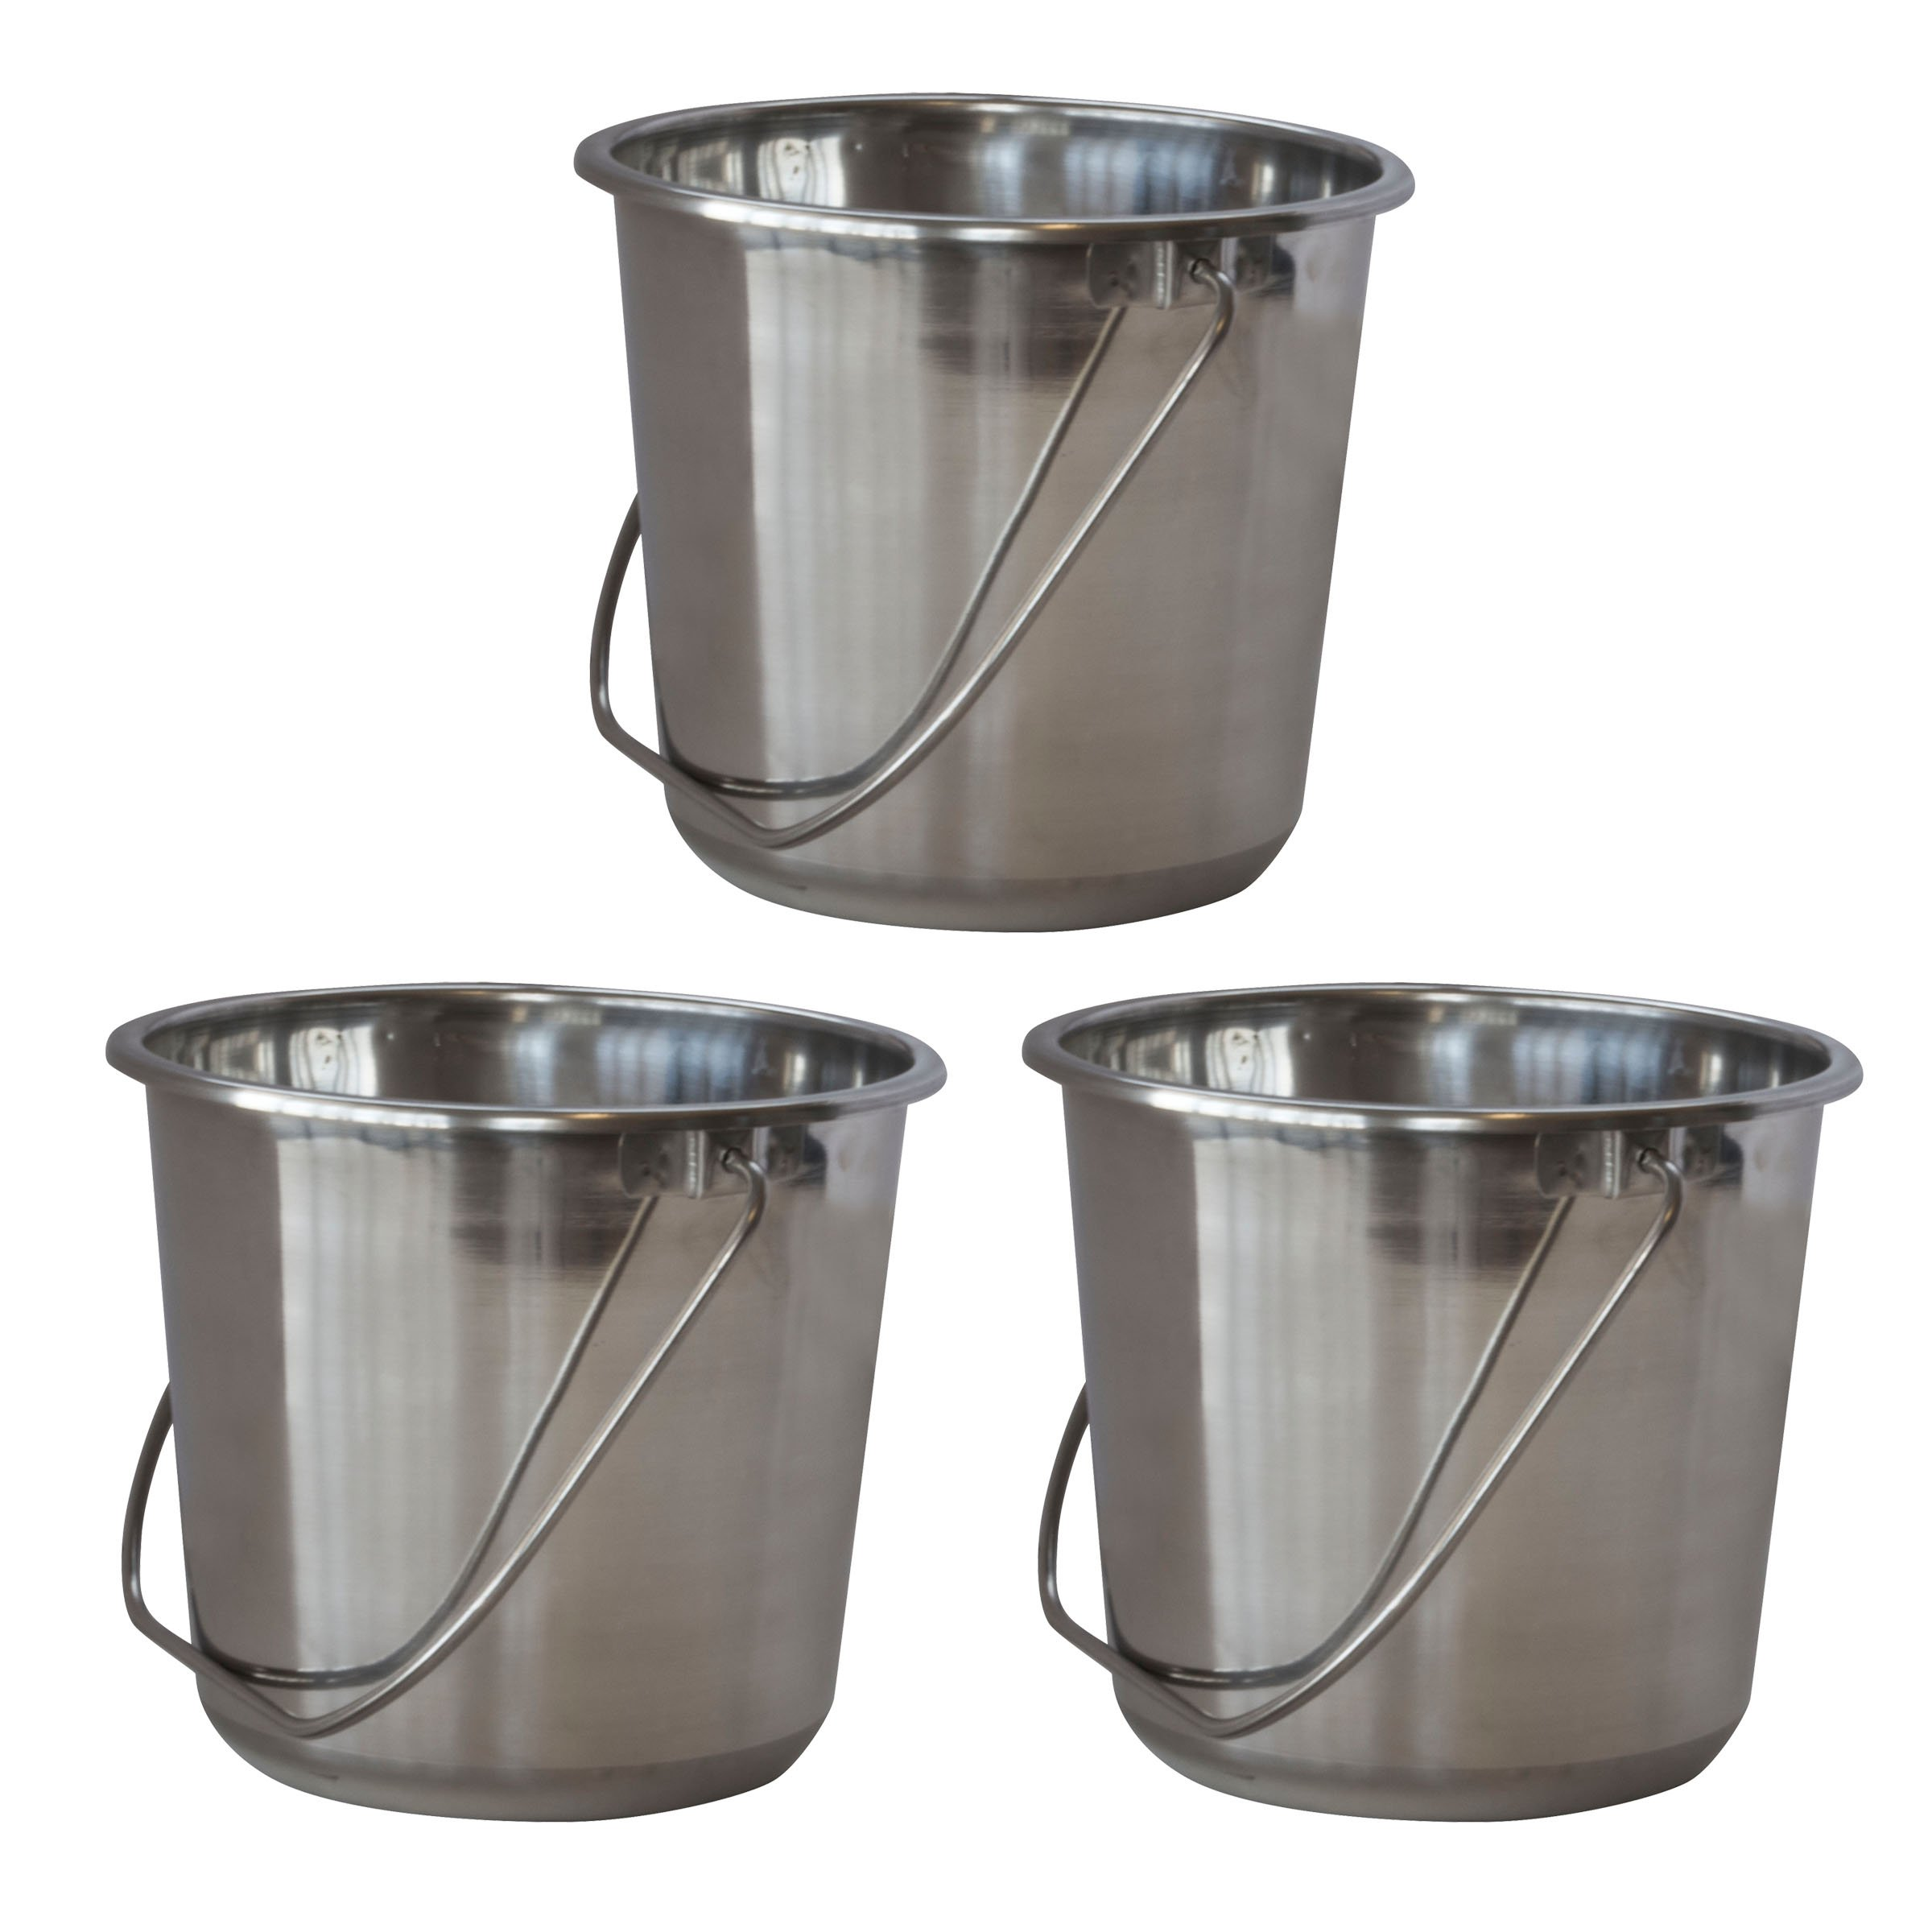 SSB132SET Small Stainless Steel Bucket Set – 3Piece